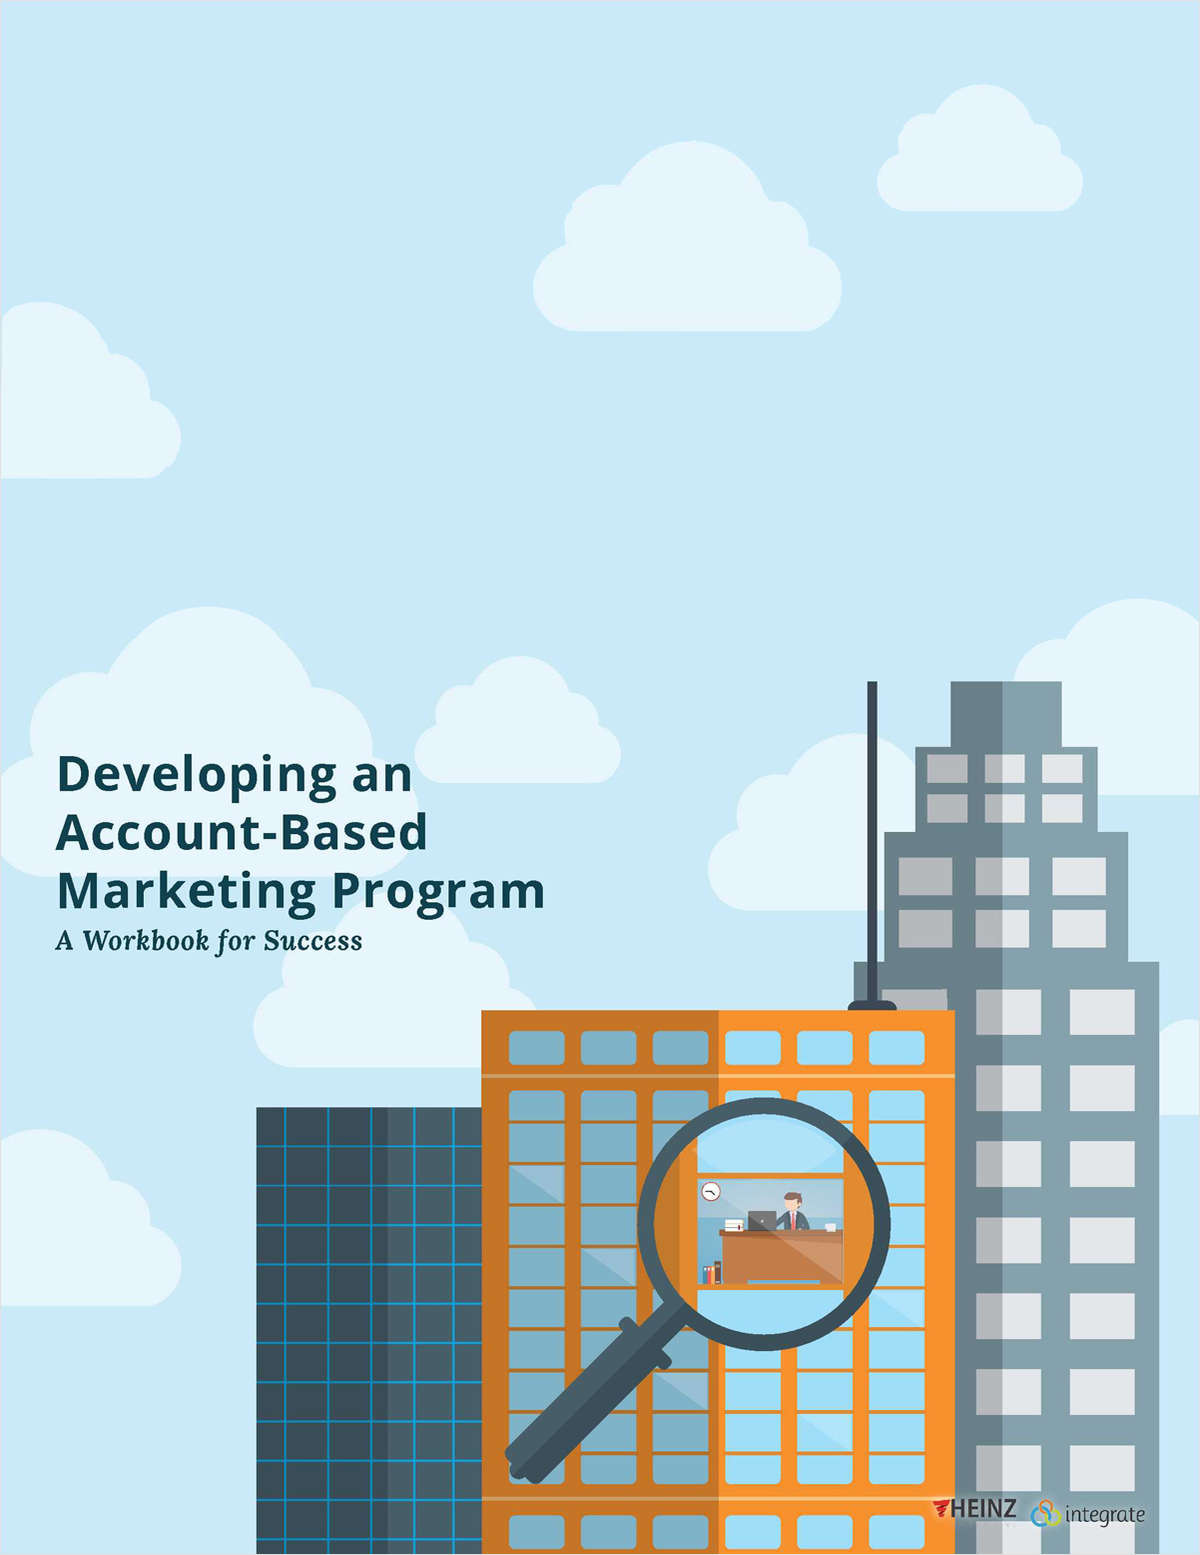 Developing an Account-Based Marketing Program